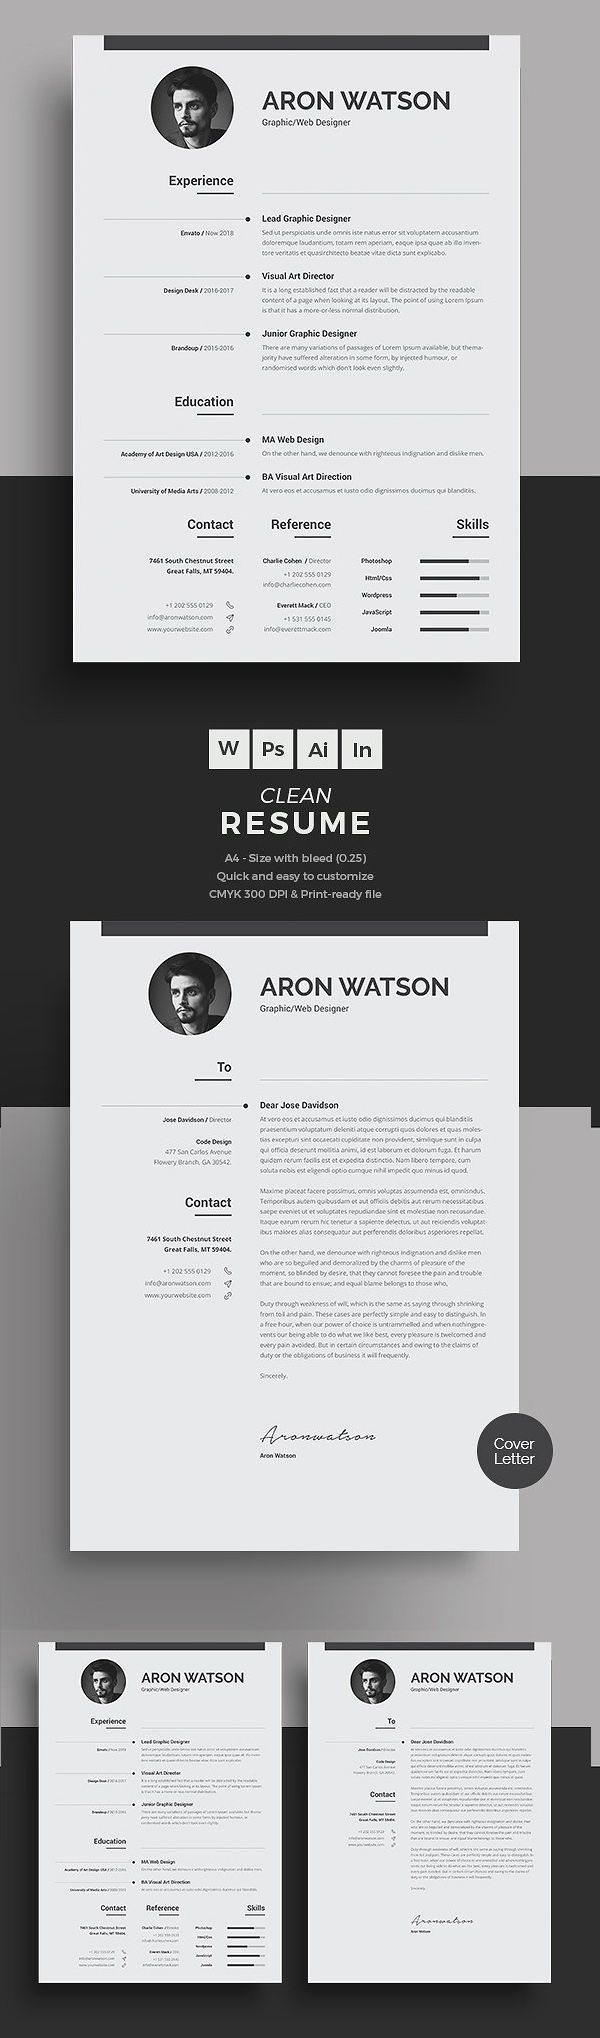 new professional cv resume templates with cover letter design graphic design junction - Graphic Design Resume Template